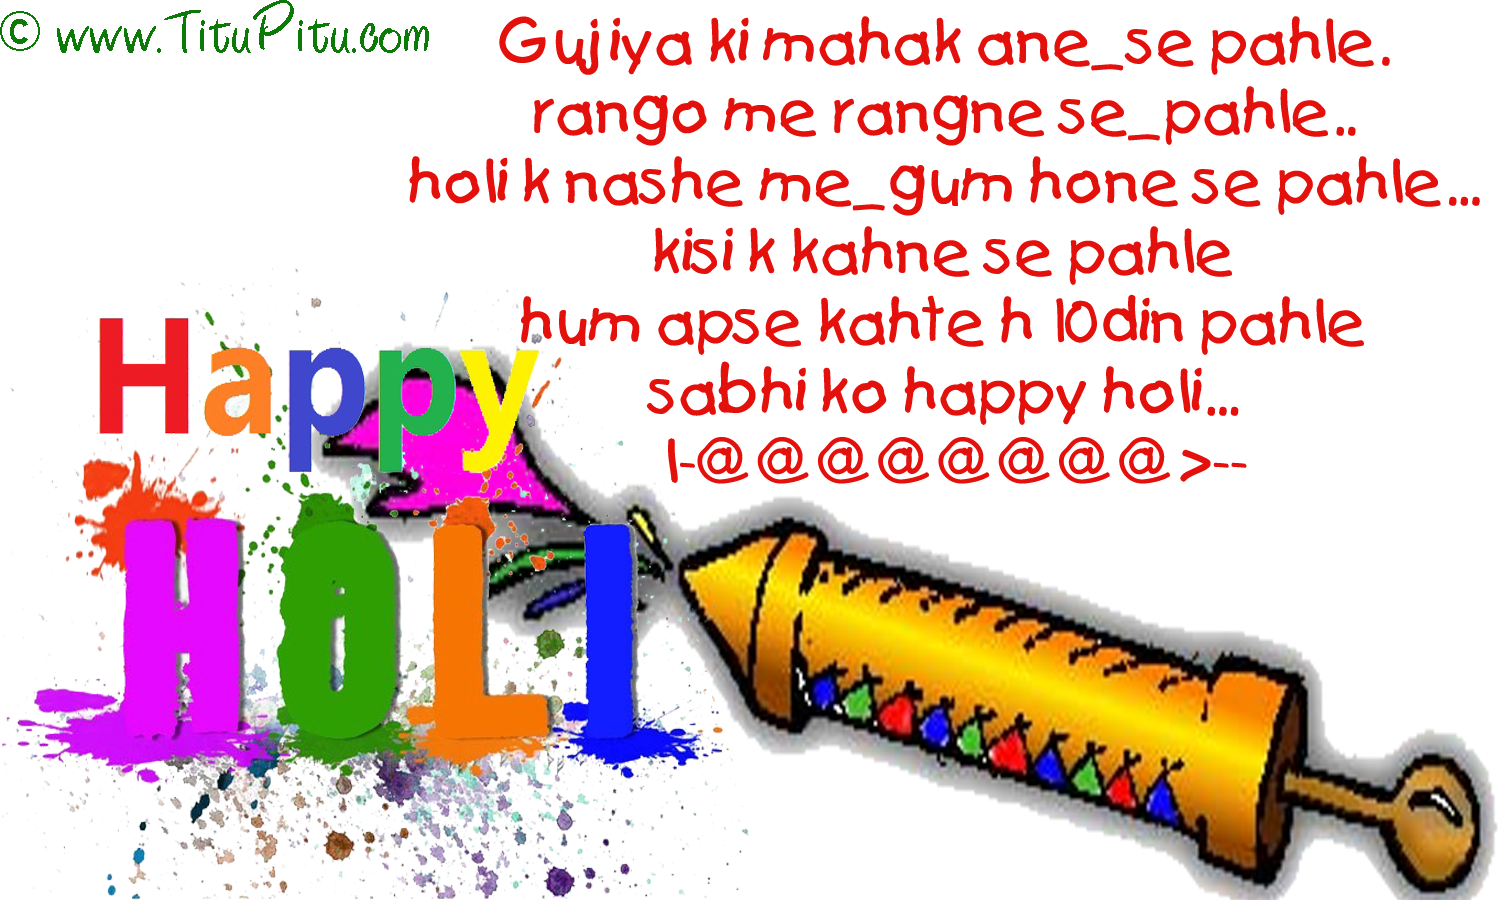 holi in hindi Why holi is celebrated - it is celebrated on the full moon day falling in the month of phalguna (feb-mar) various colors and water are thrown on each other, amidst loud music, drums etc to.